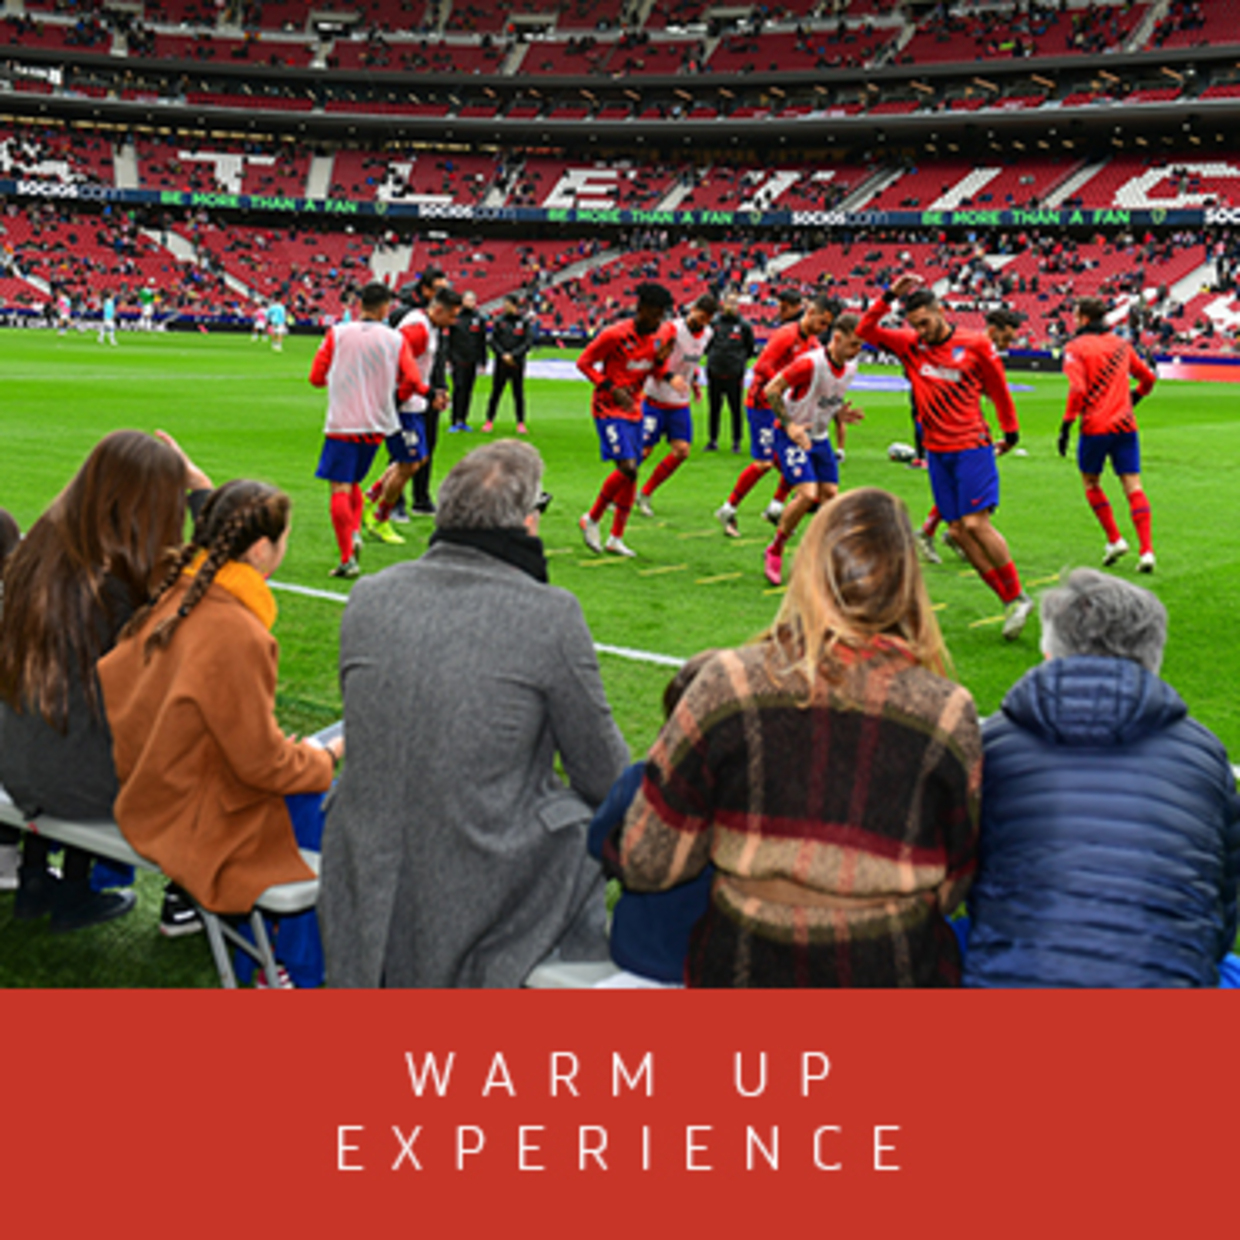 WARM UP EXPERIENCE